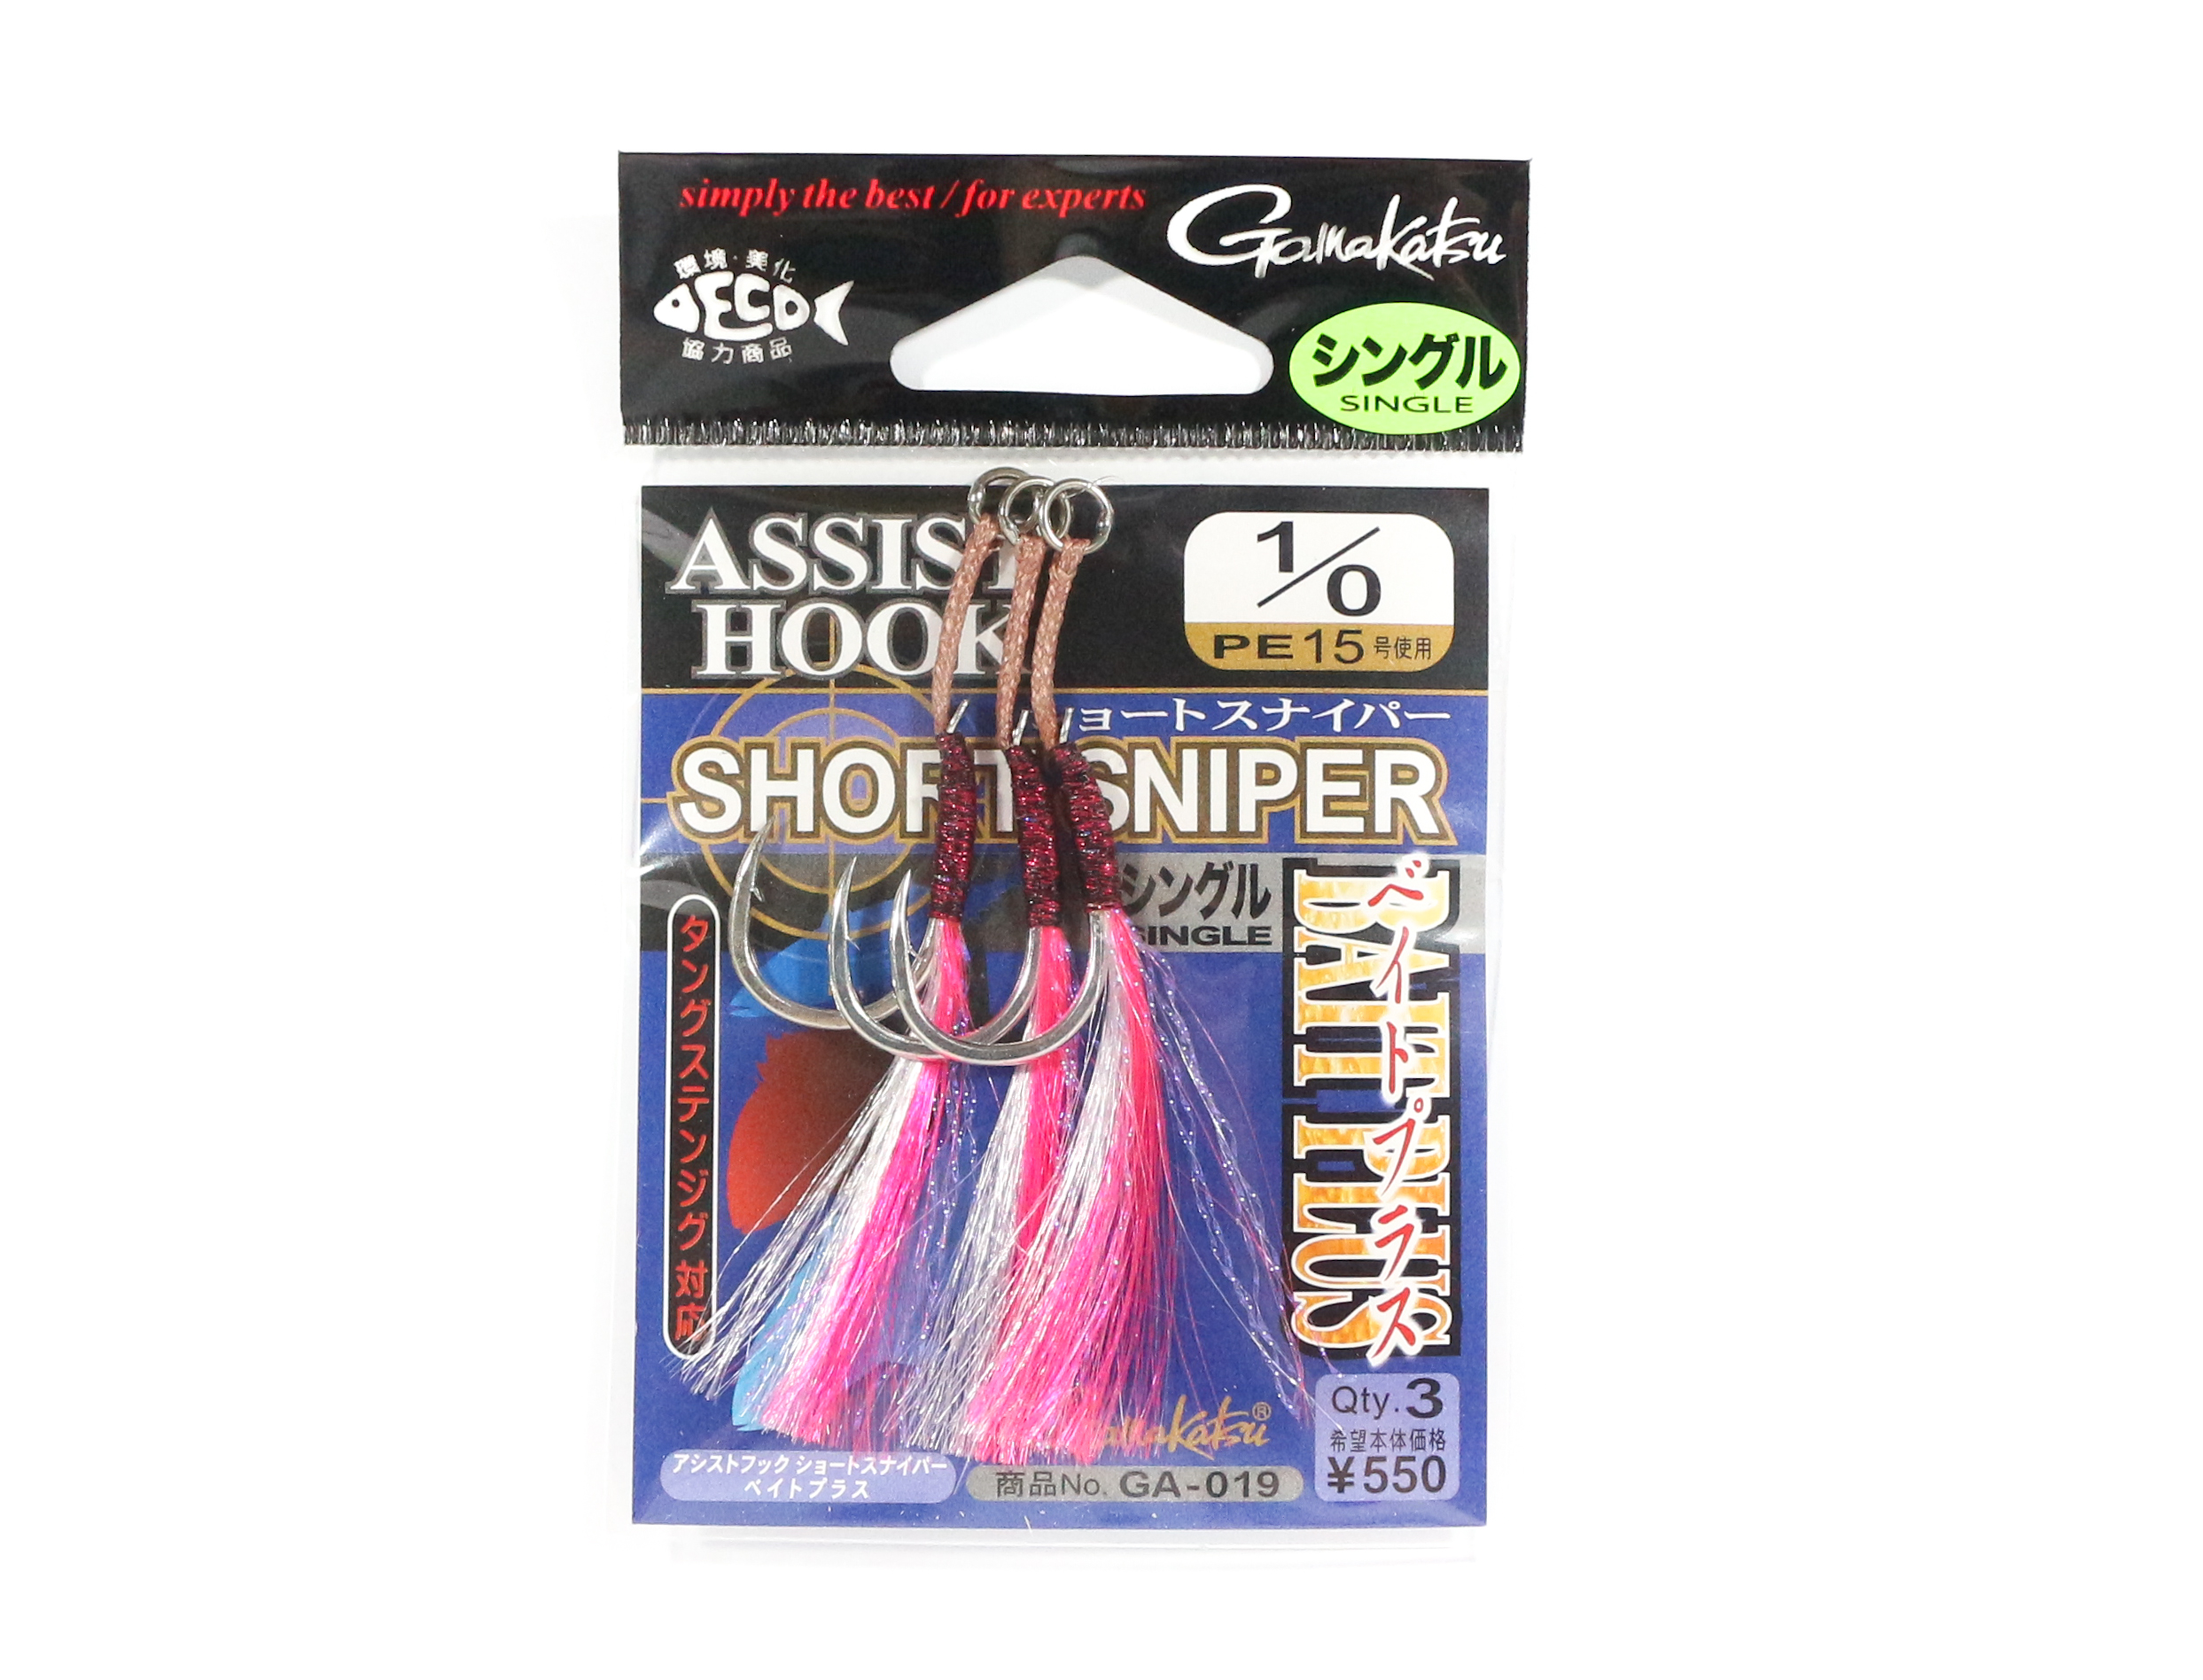 Gamakatsu GA-019 Assist Hook Short Sniper Single Size 1/0 ,3 Per pack (4155)